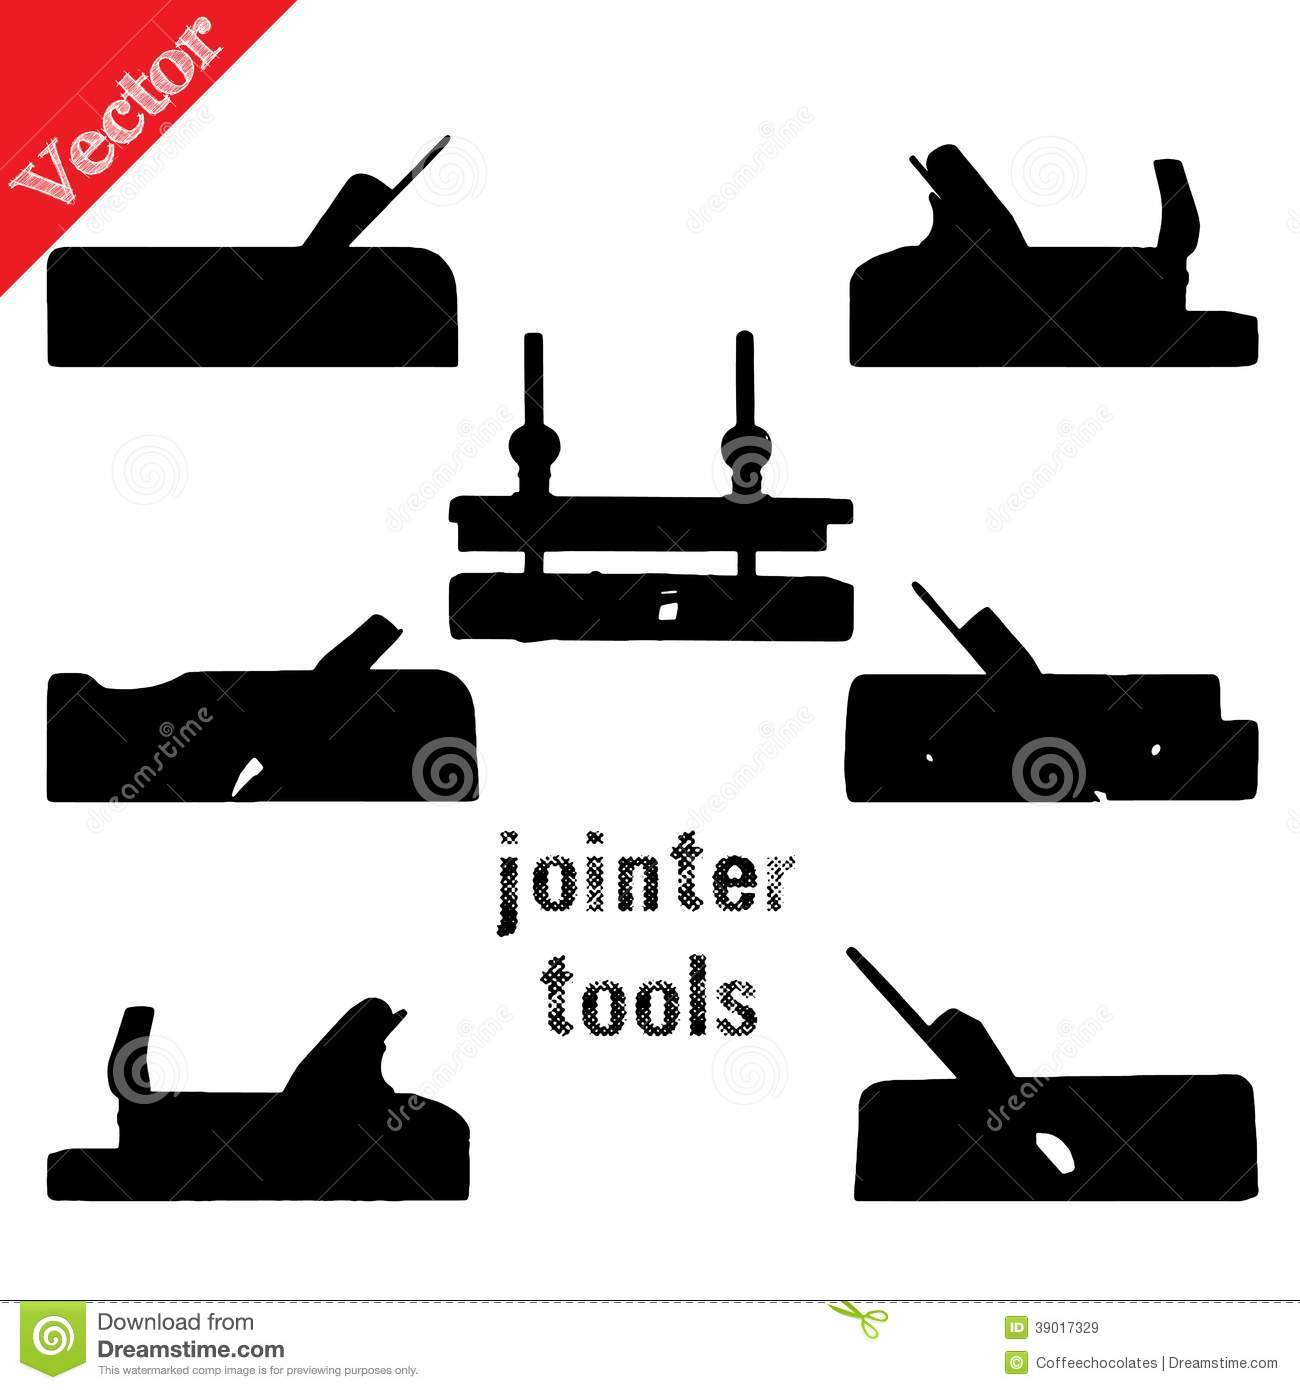 Woodworking Tools Silhouette Elegant Red Woodworking